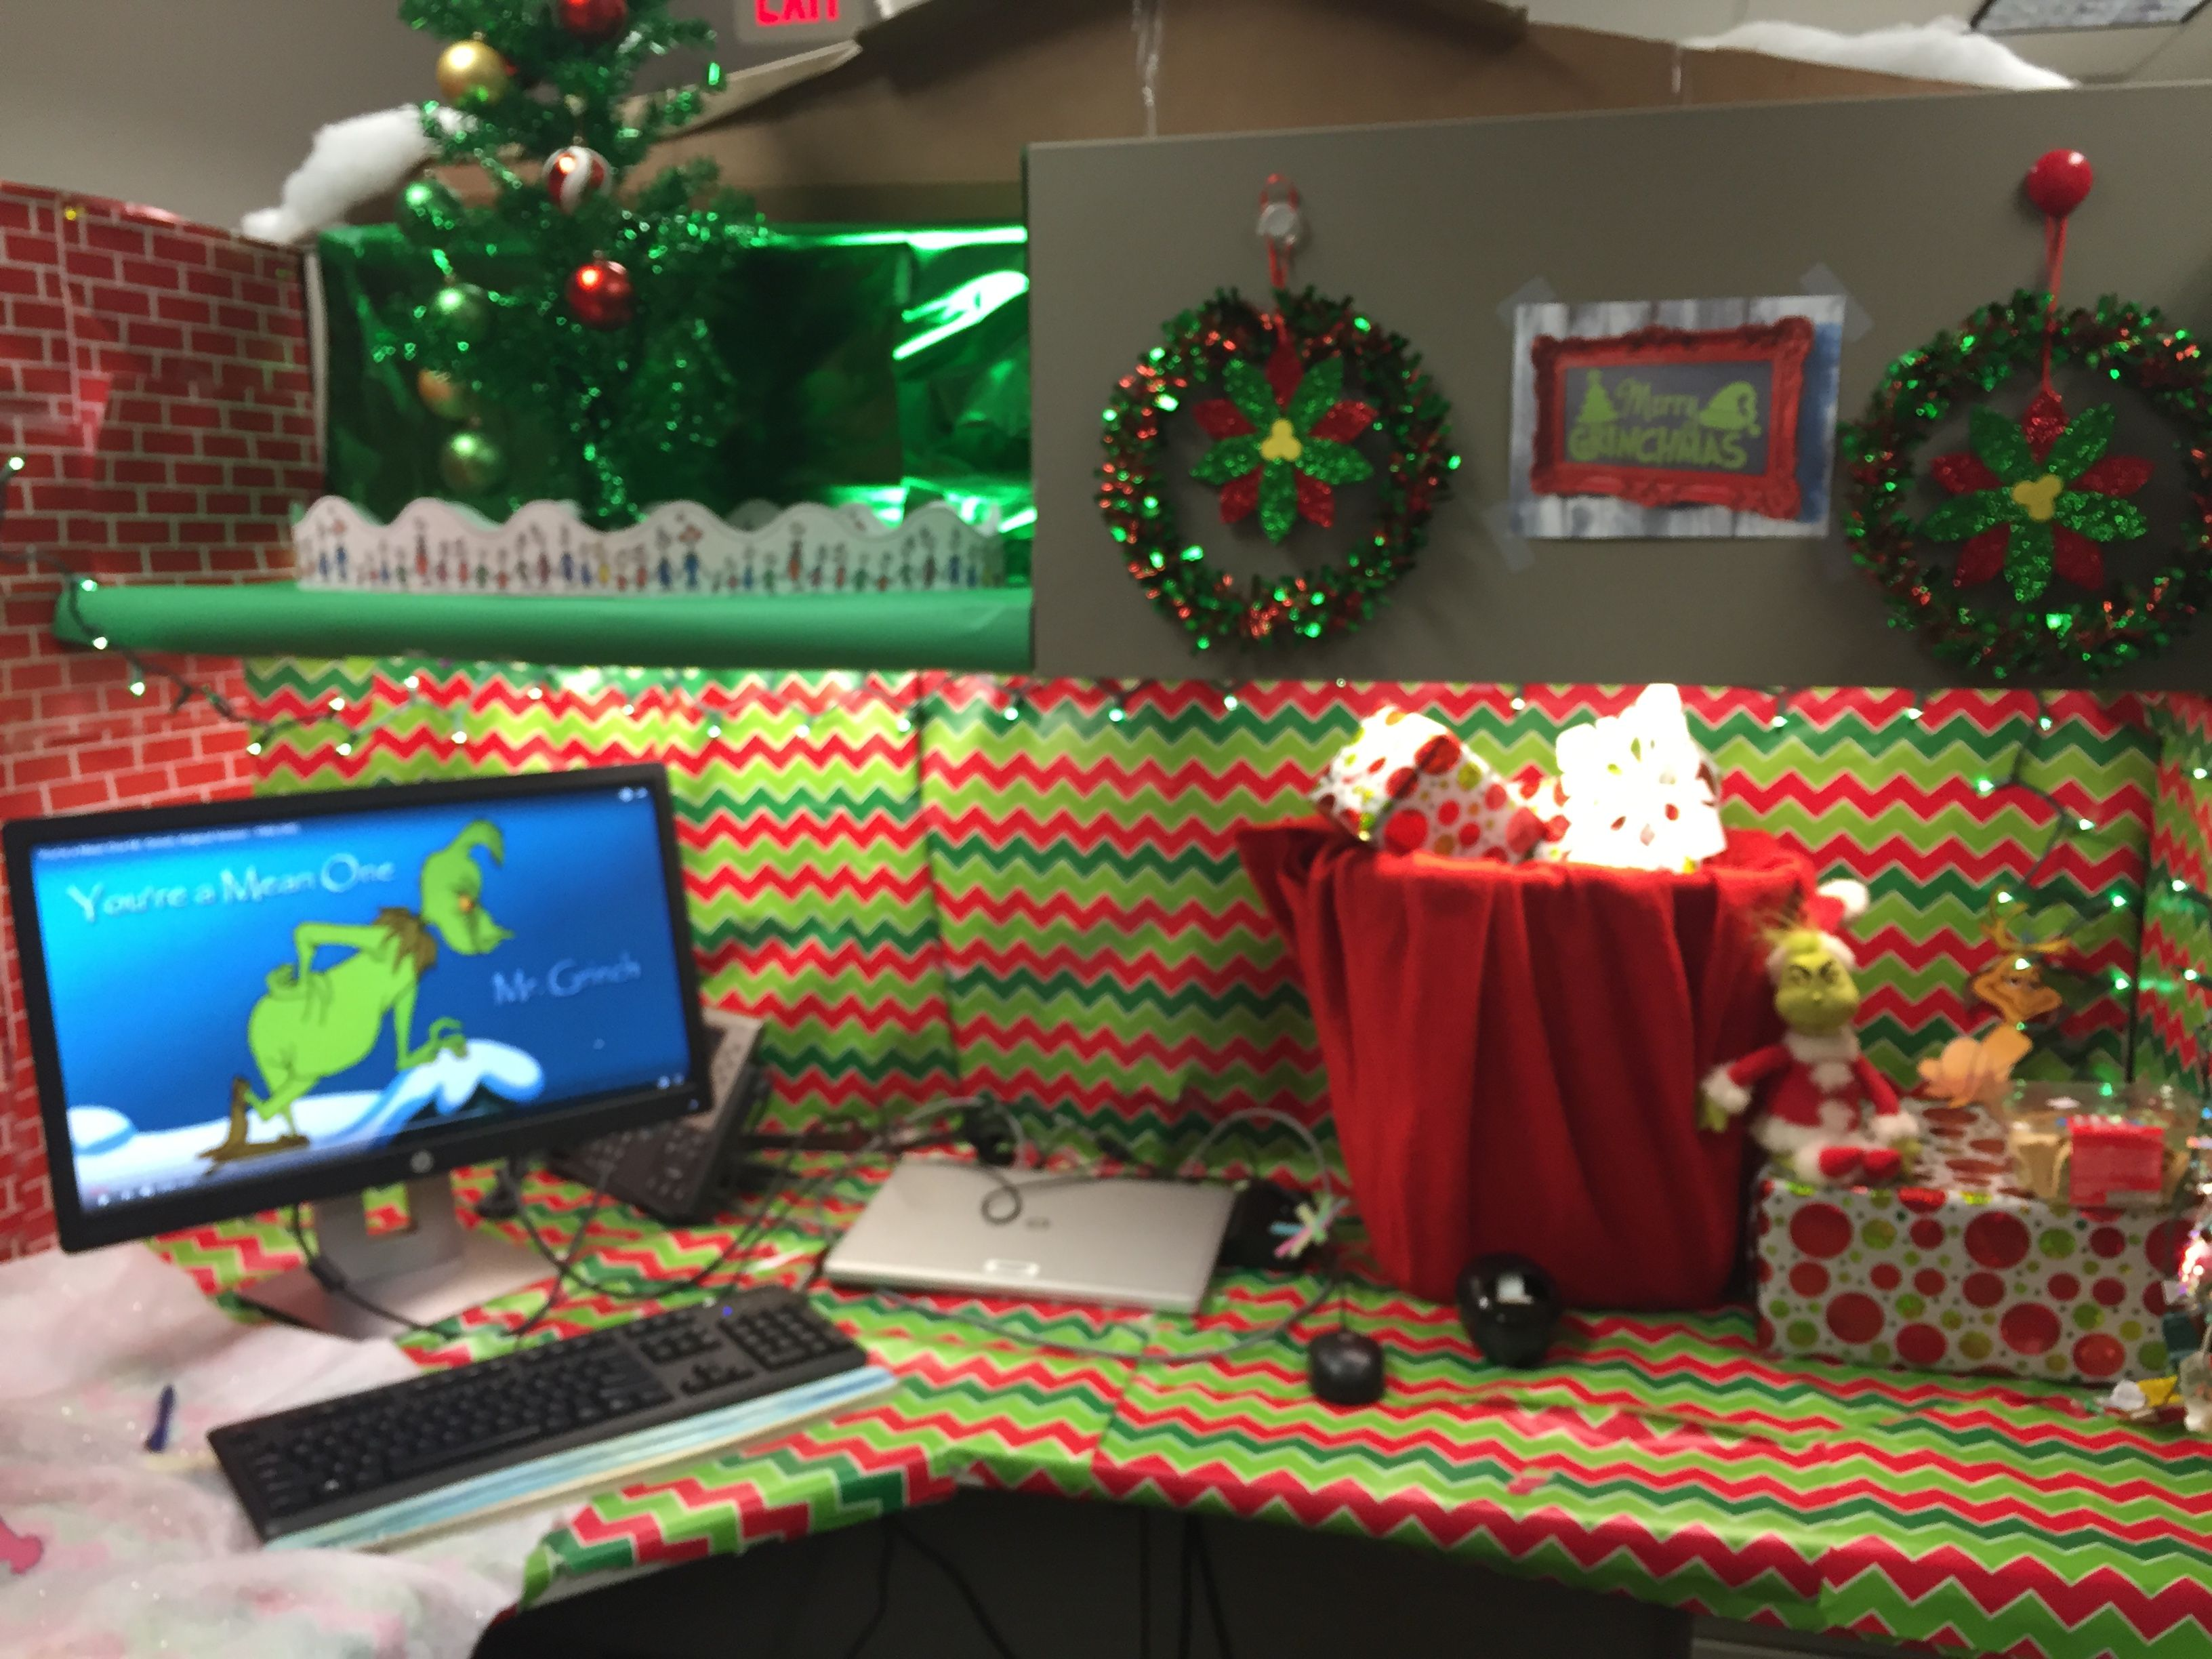 Grinch Cubicle Decoration Office Christmas Decorations Christmas Desk Decorations Holiday Office Decor